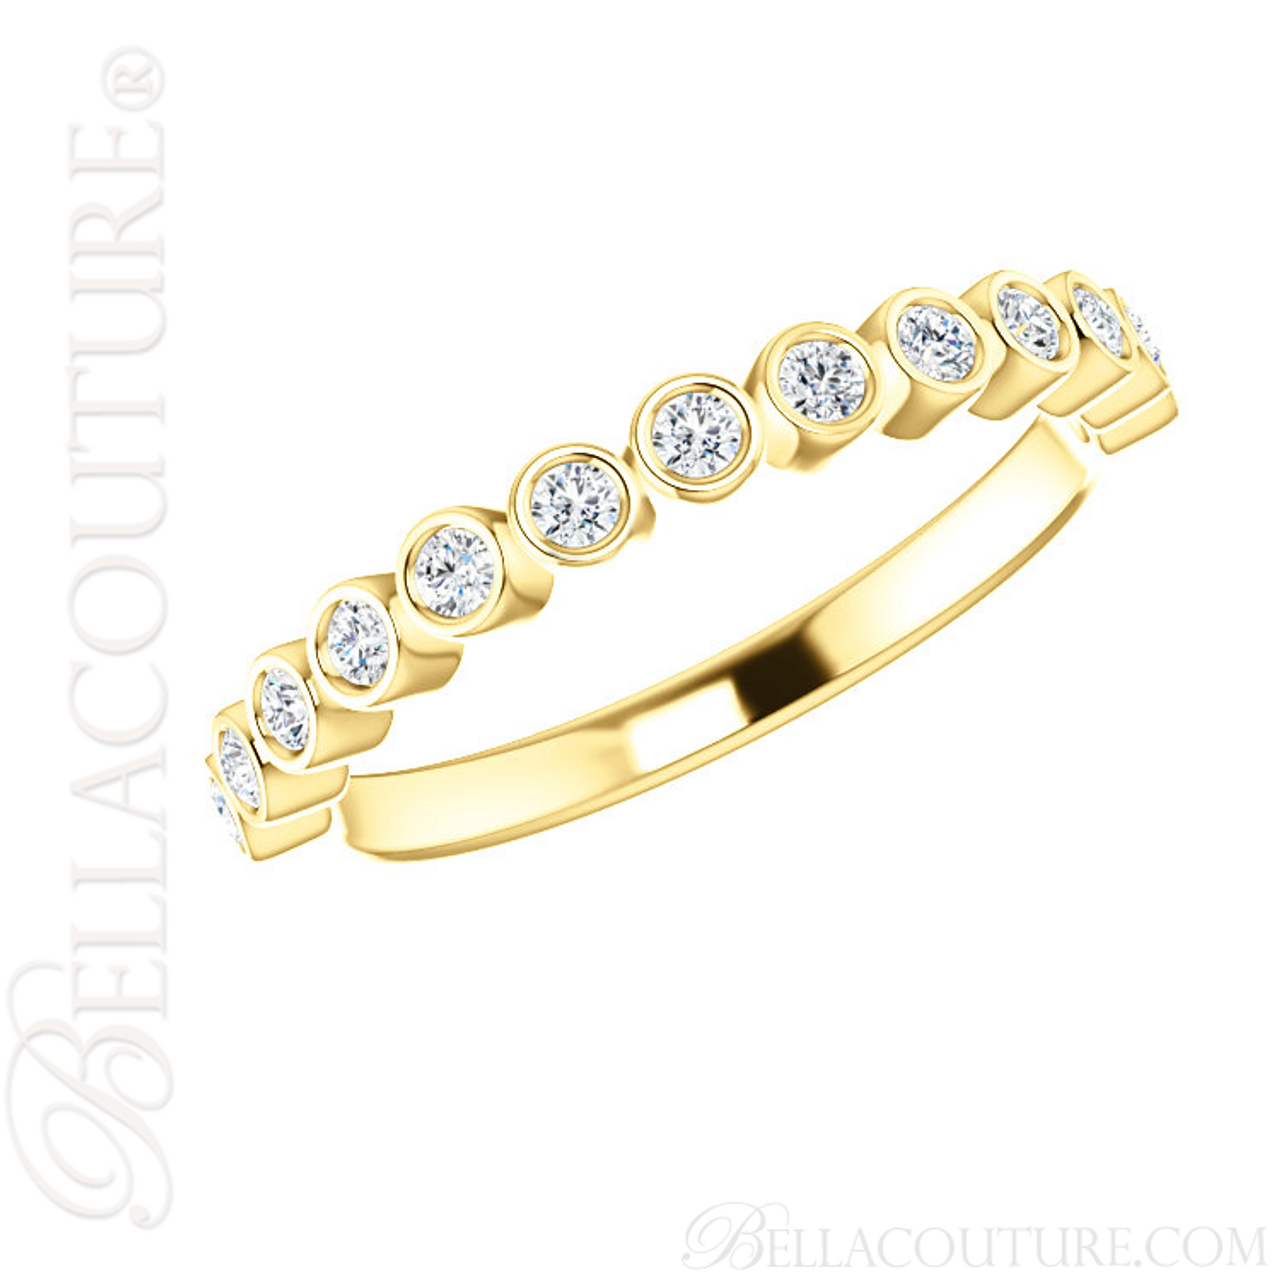 0854990c9 (NEW) BELLA COUTURE BEILSON Fine Diamond Bezel Set 14K Yellow Gold  Stackable Ring Band (1/4 CT. TW.) - BELLA COUTURE ®